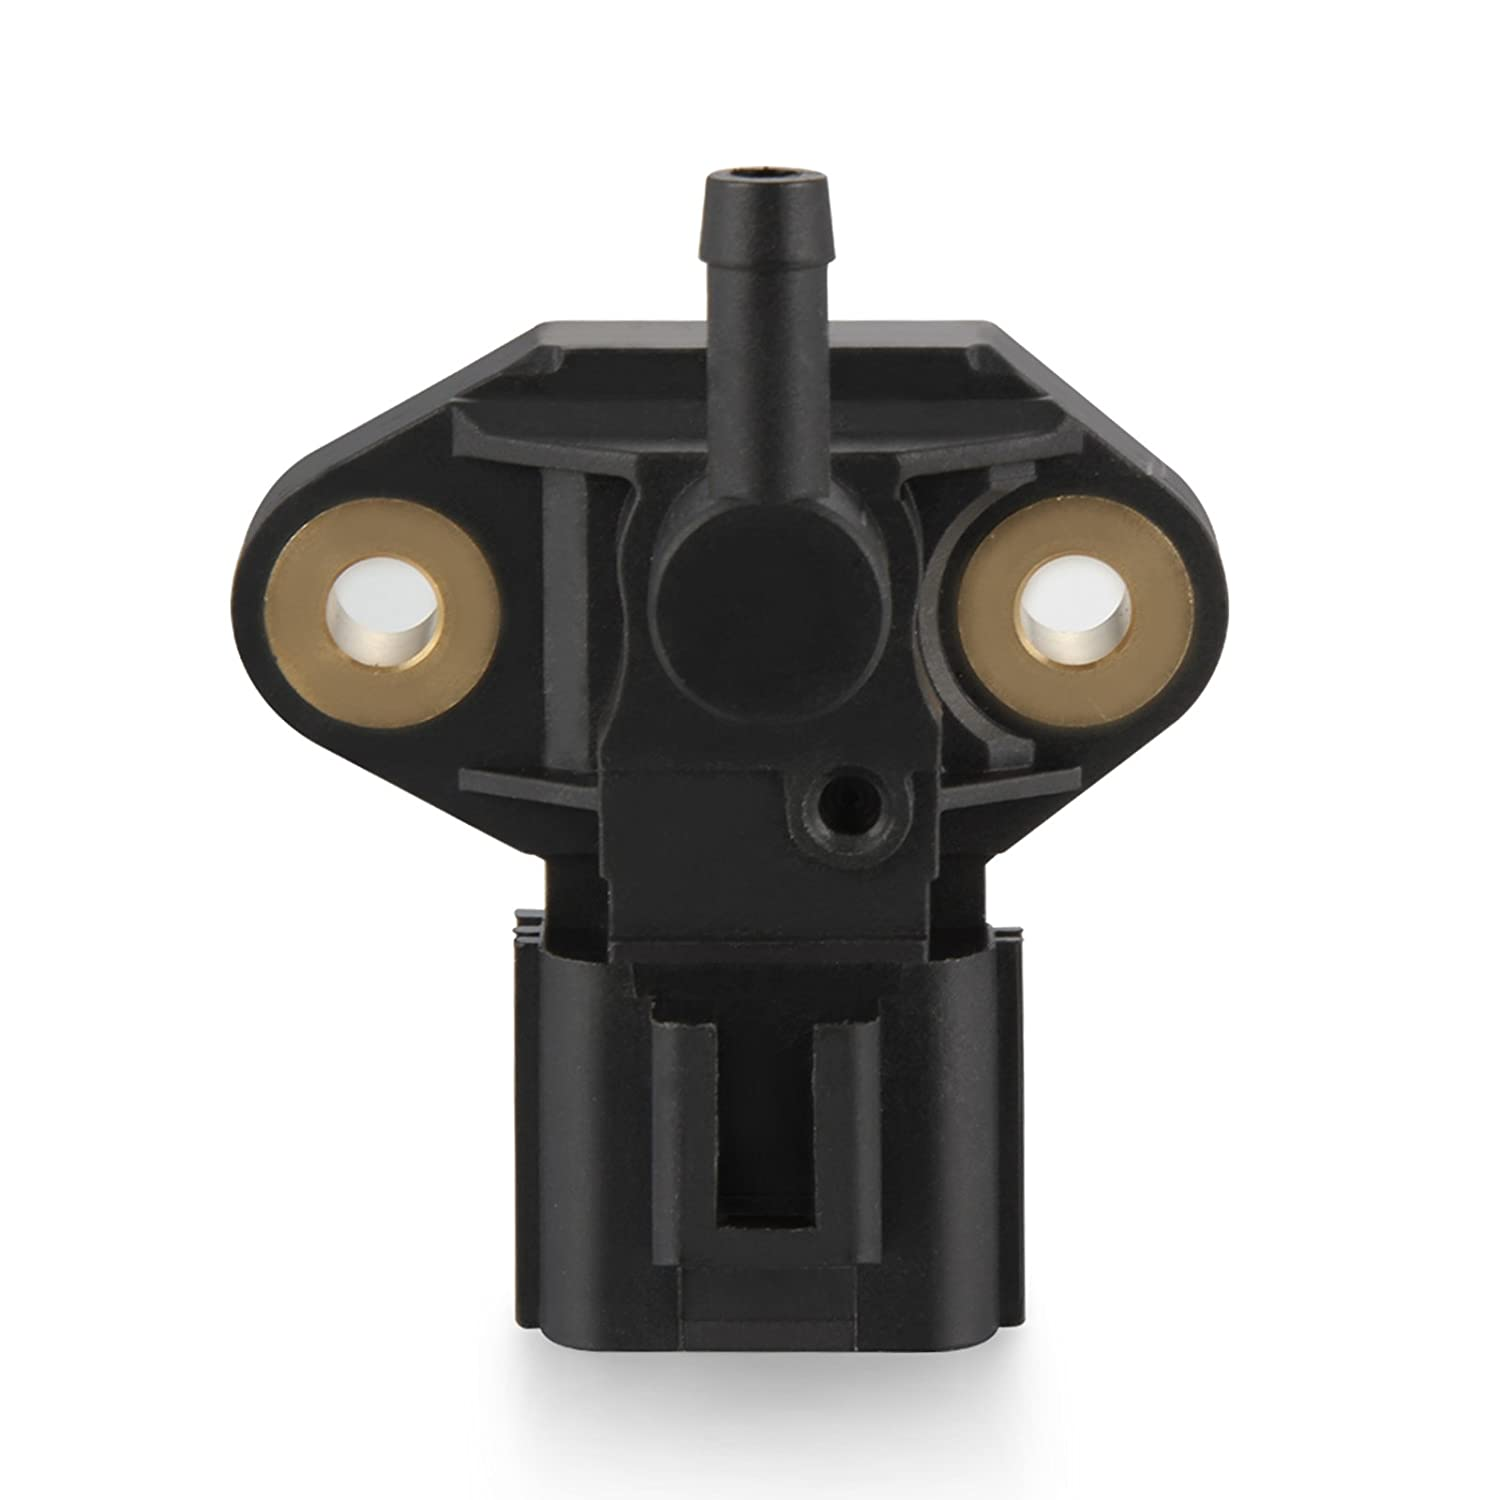 Fuel Injector Pressure Sensor 3F2Z9F792CA For Ford Crown Mercury Mountaineer Lincoln Town Car From Madlife Garage